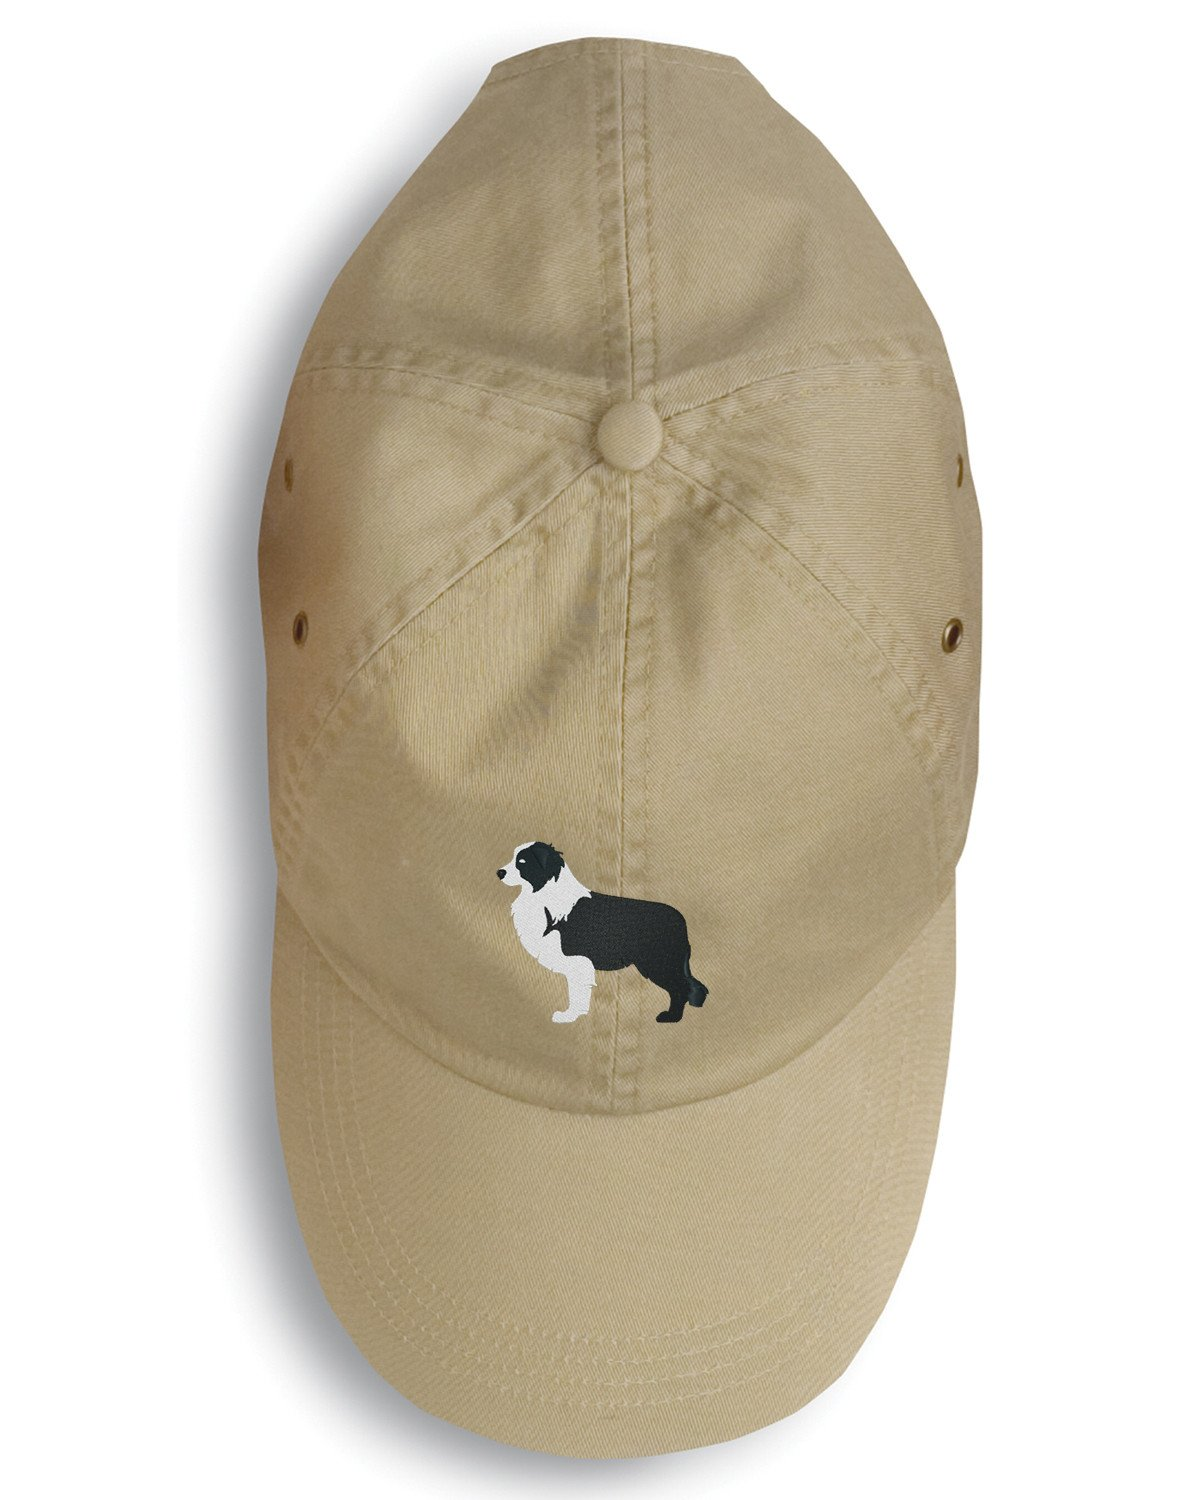 Black Border Collie Embroidered Baseball Cap BB3423BU-156 by Caroline's Treasures